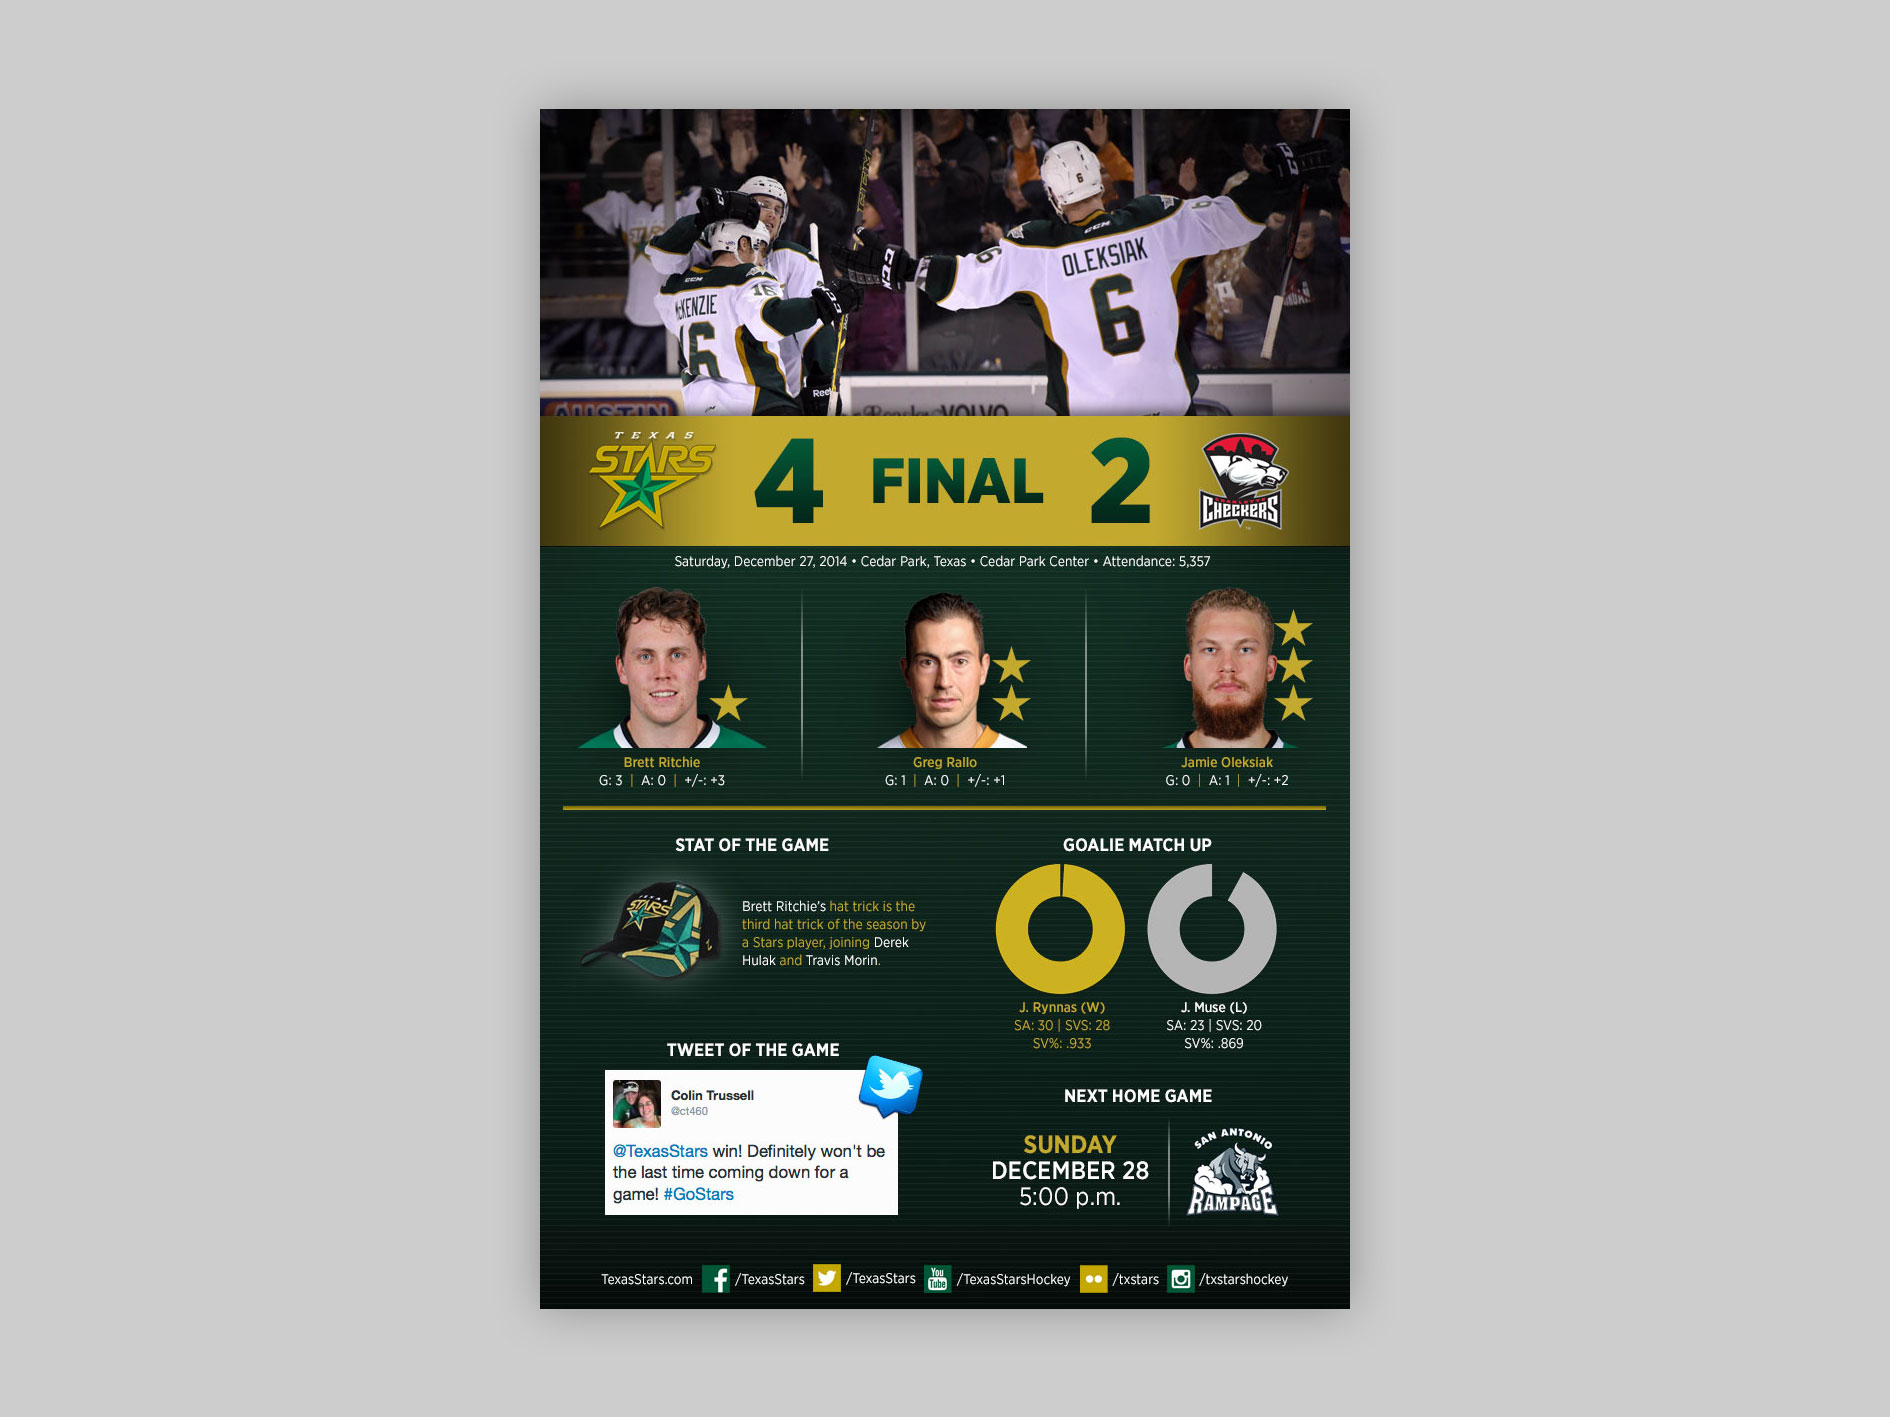 Infographic shared on social media as a post-game summary for fans.